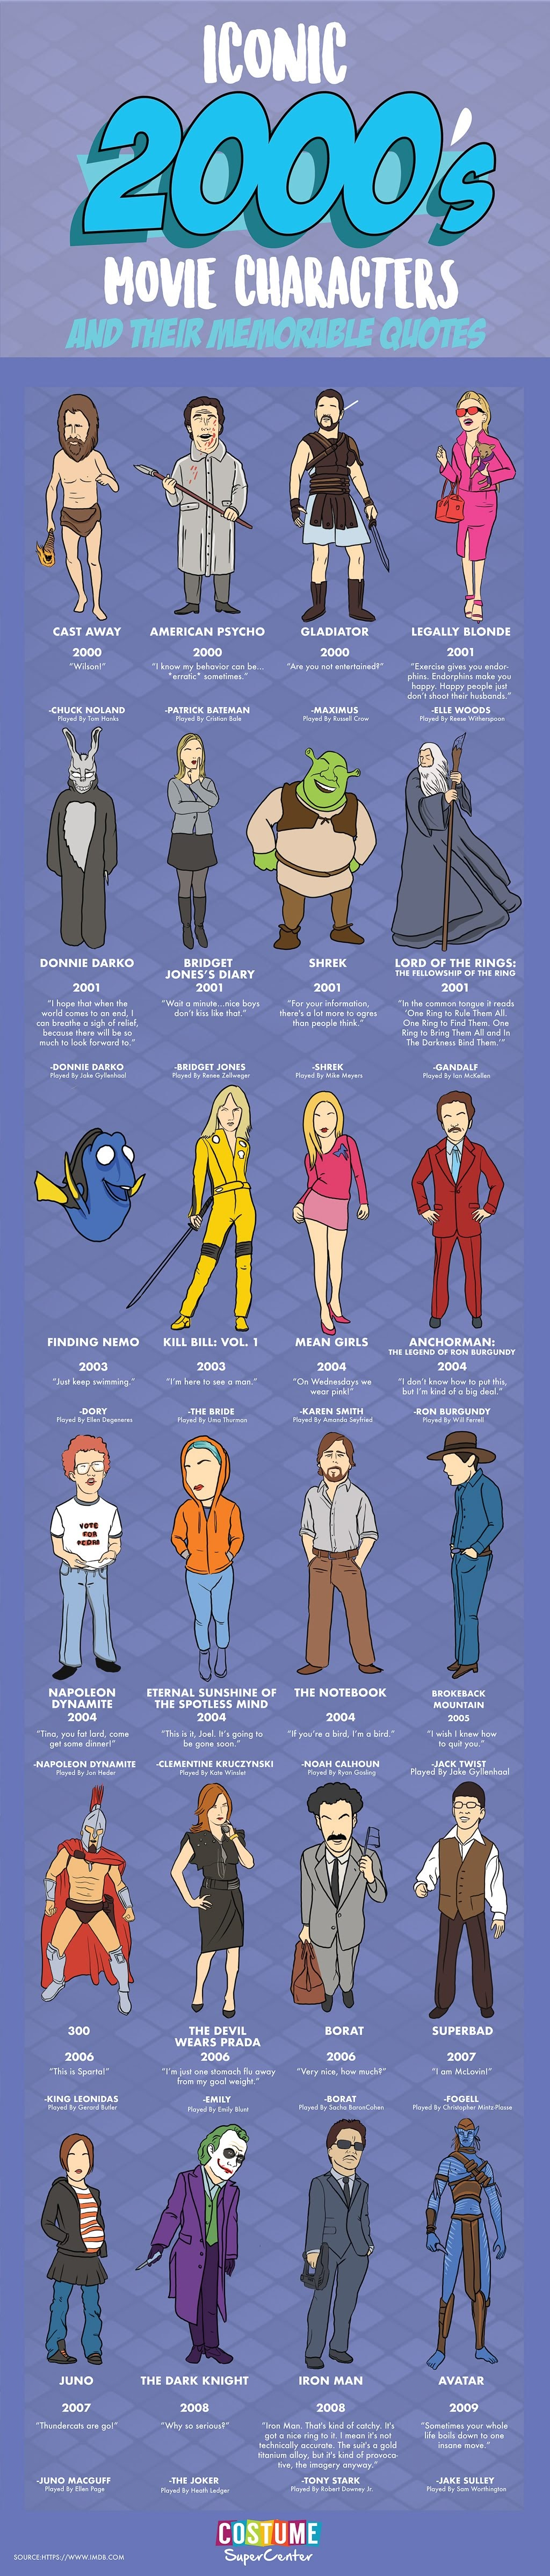 Iconic 2000's Movie Characters #infographic